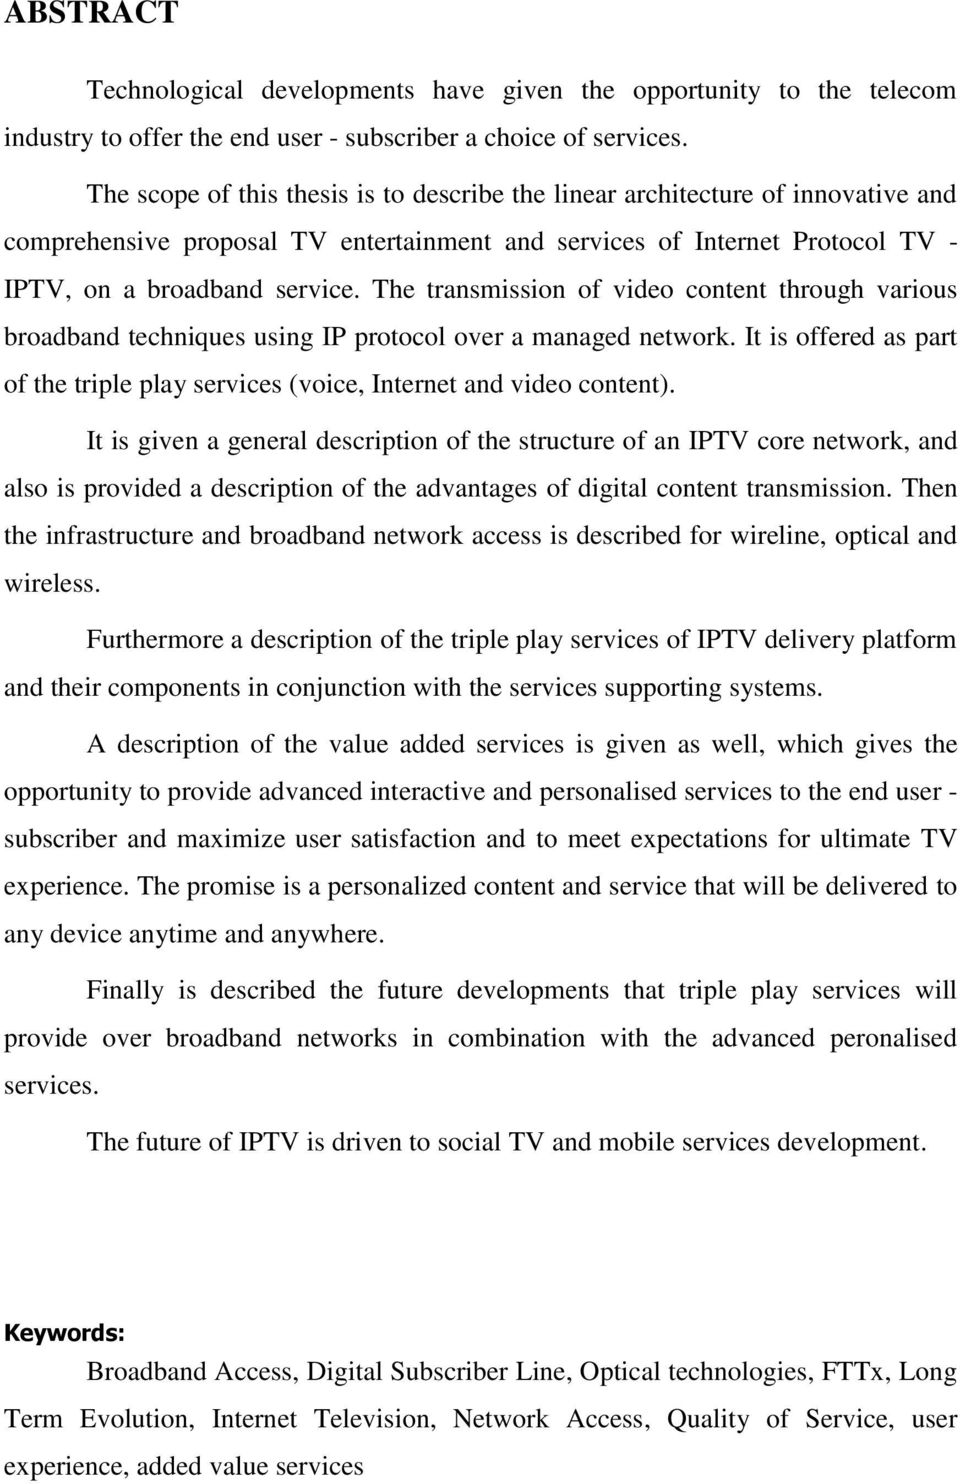 The transmission of video content through various broadband techniques using IP protocol over a managed network. It is offered as part of the triple play services (voice, Internet and video content).